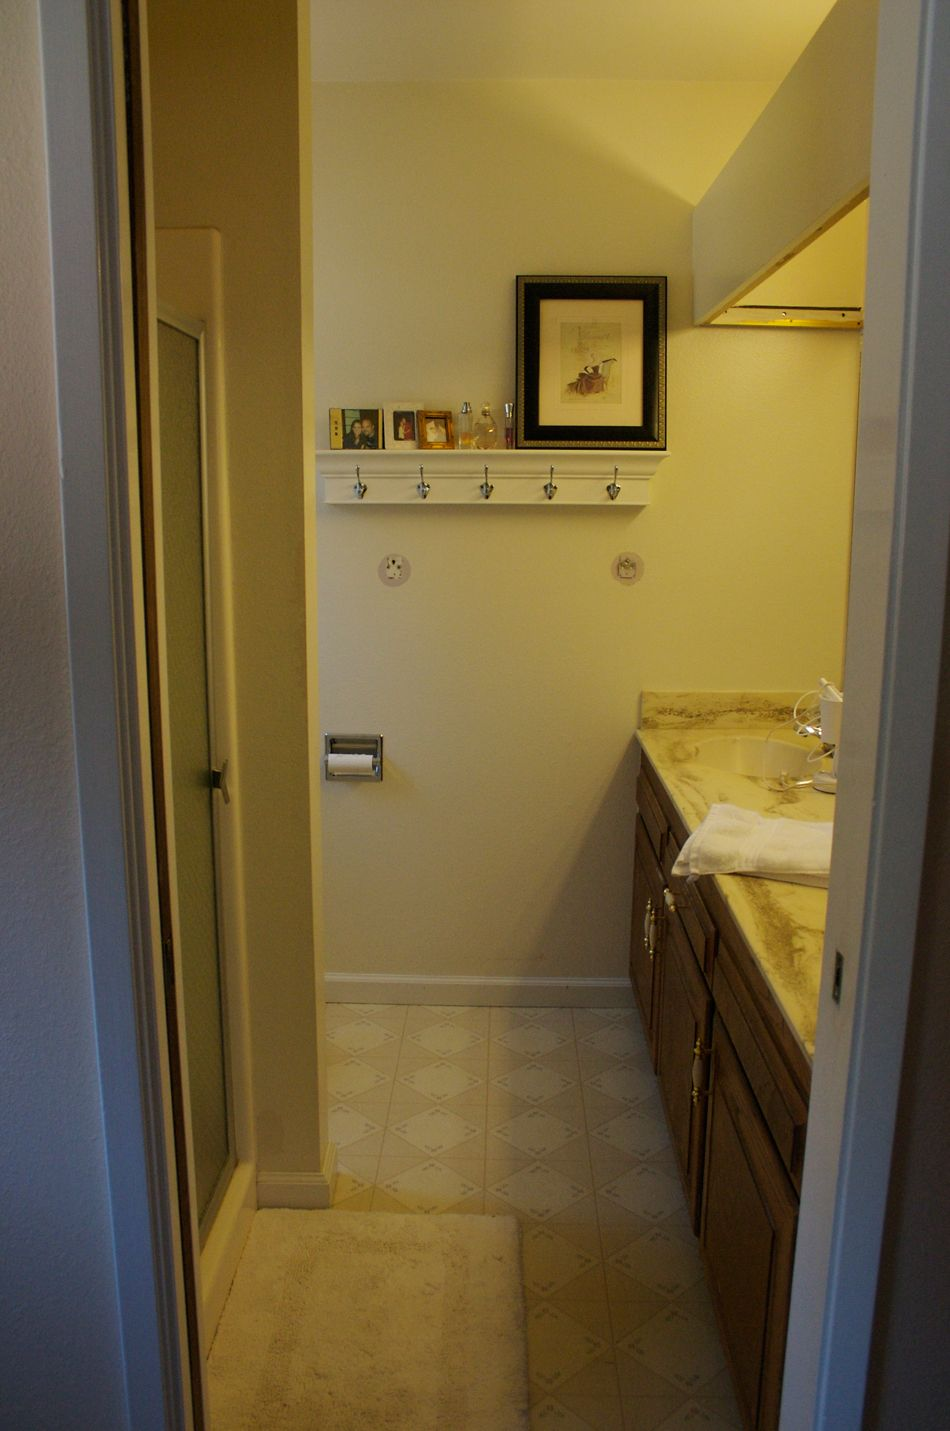 Marvelous The Original Bathroom With Vinyl Floor, Faux Marble Counter, And Old Plastic  Shower Insert